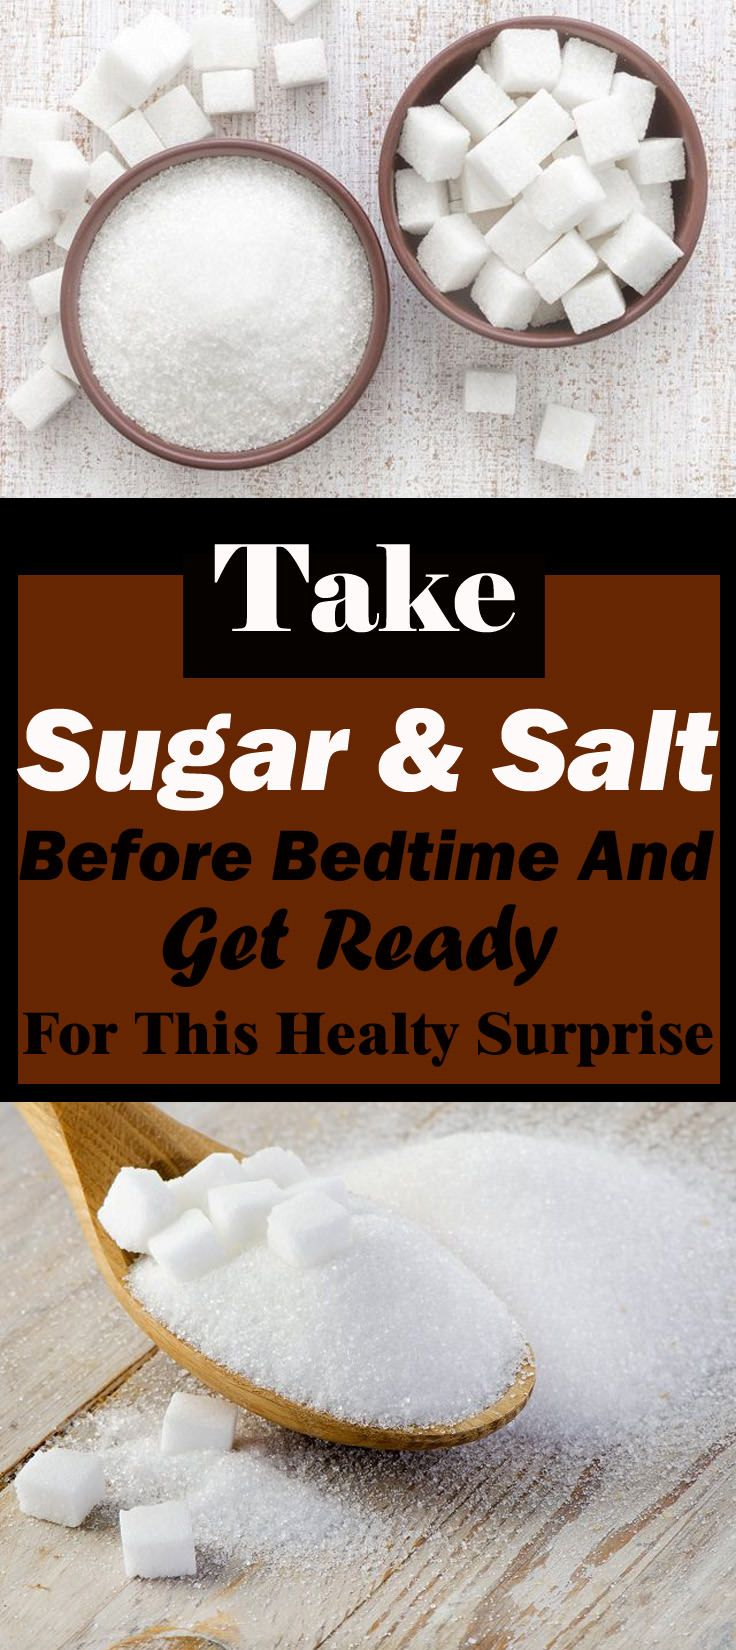 Take Salt and Sugar Before Bedtime and Get Ready for This Healthy Surprise